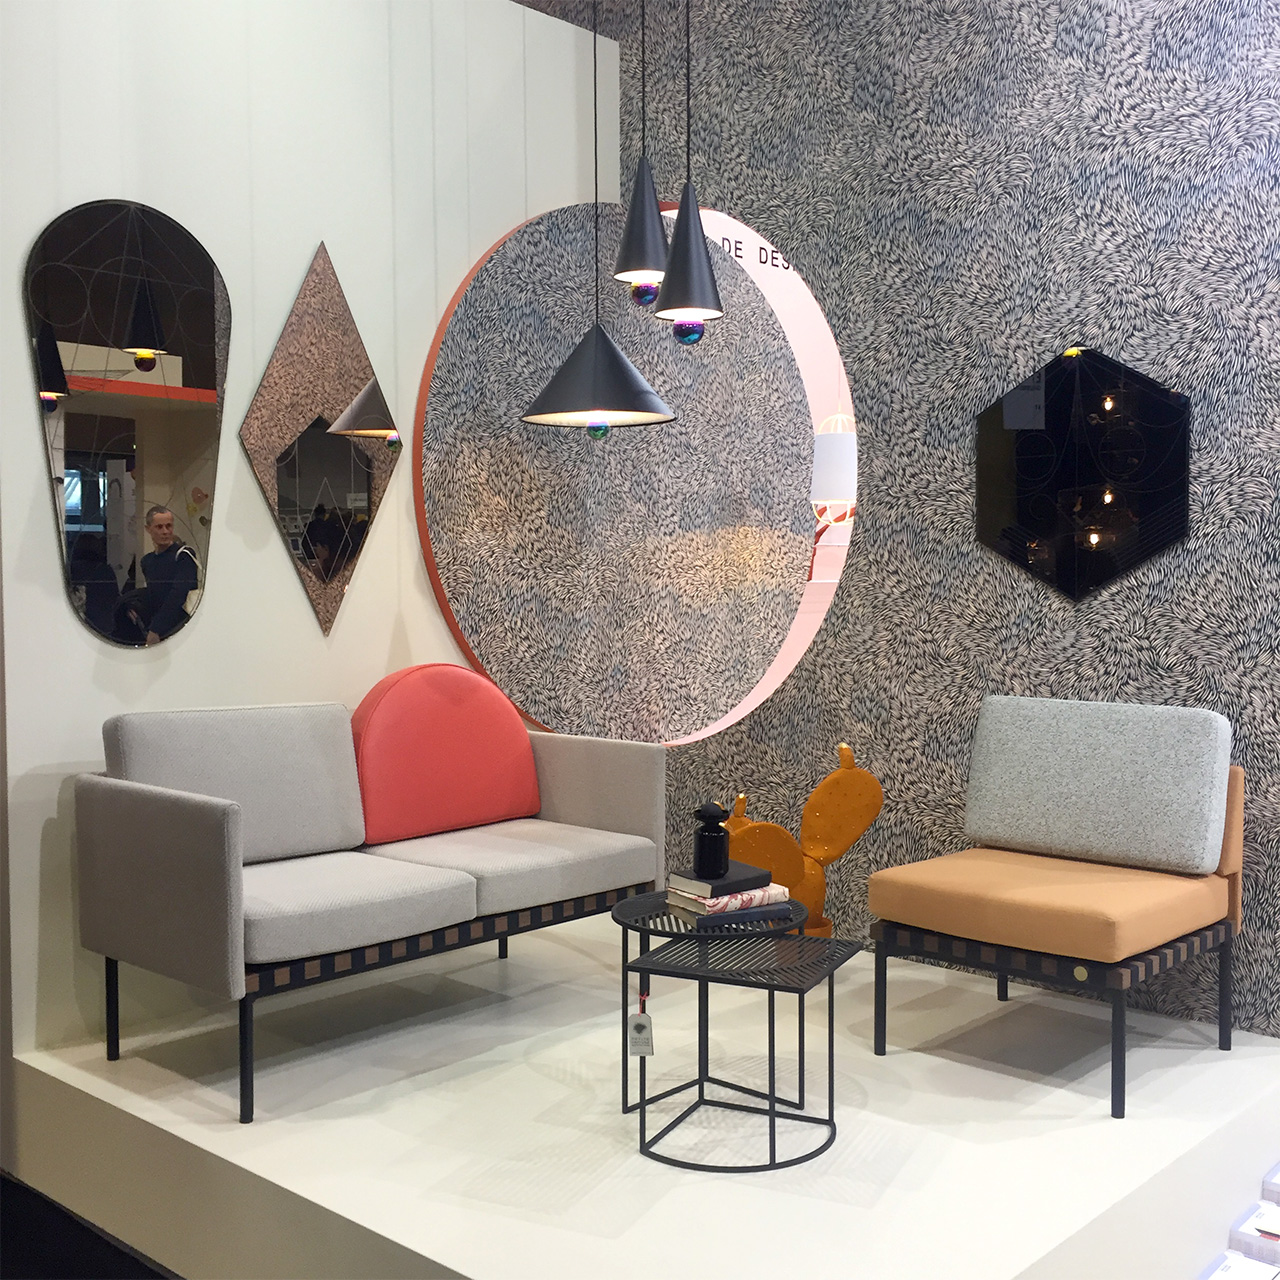 Maison objet 2017 putting the fun back into paris design milk